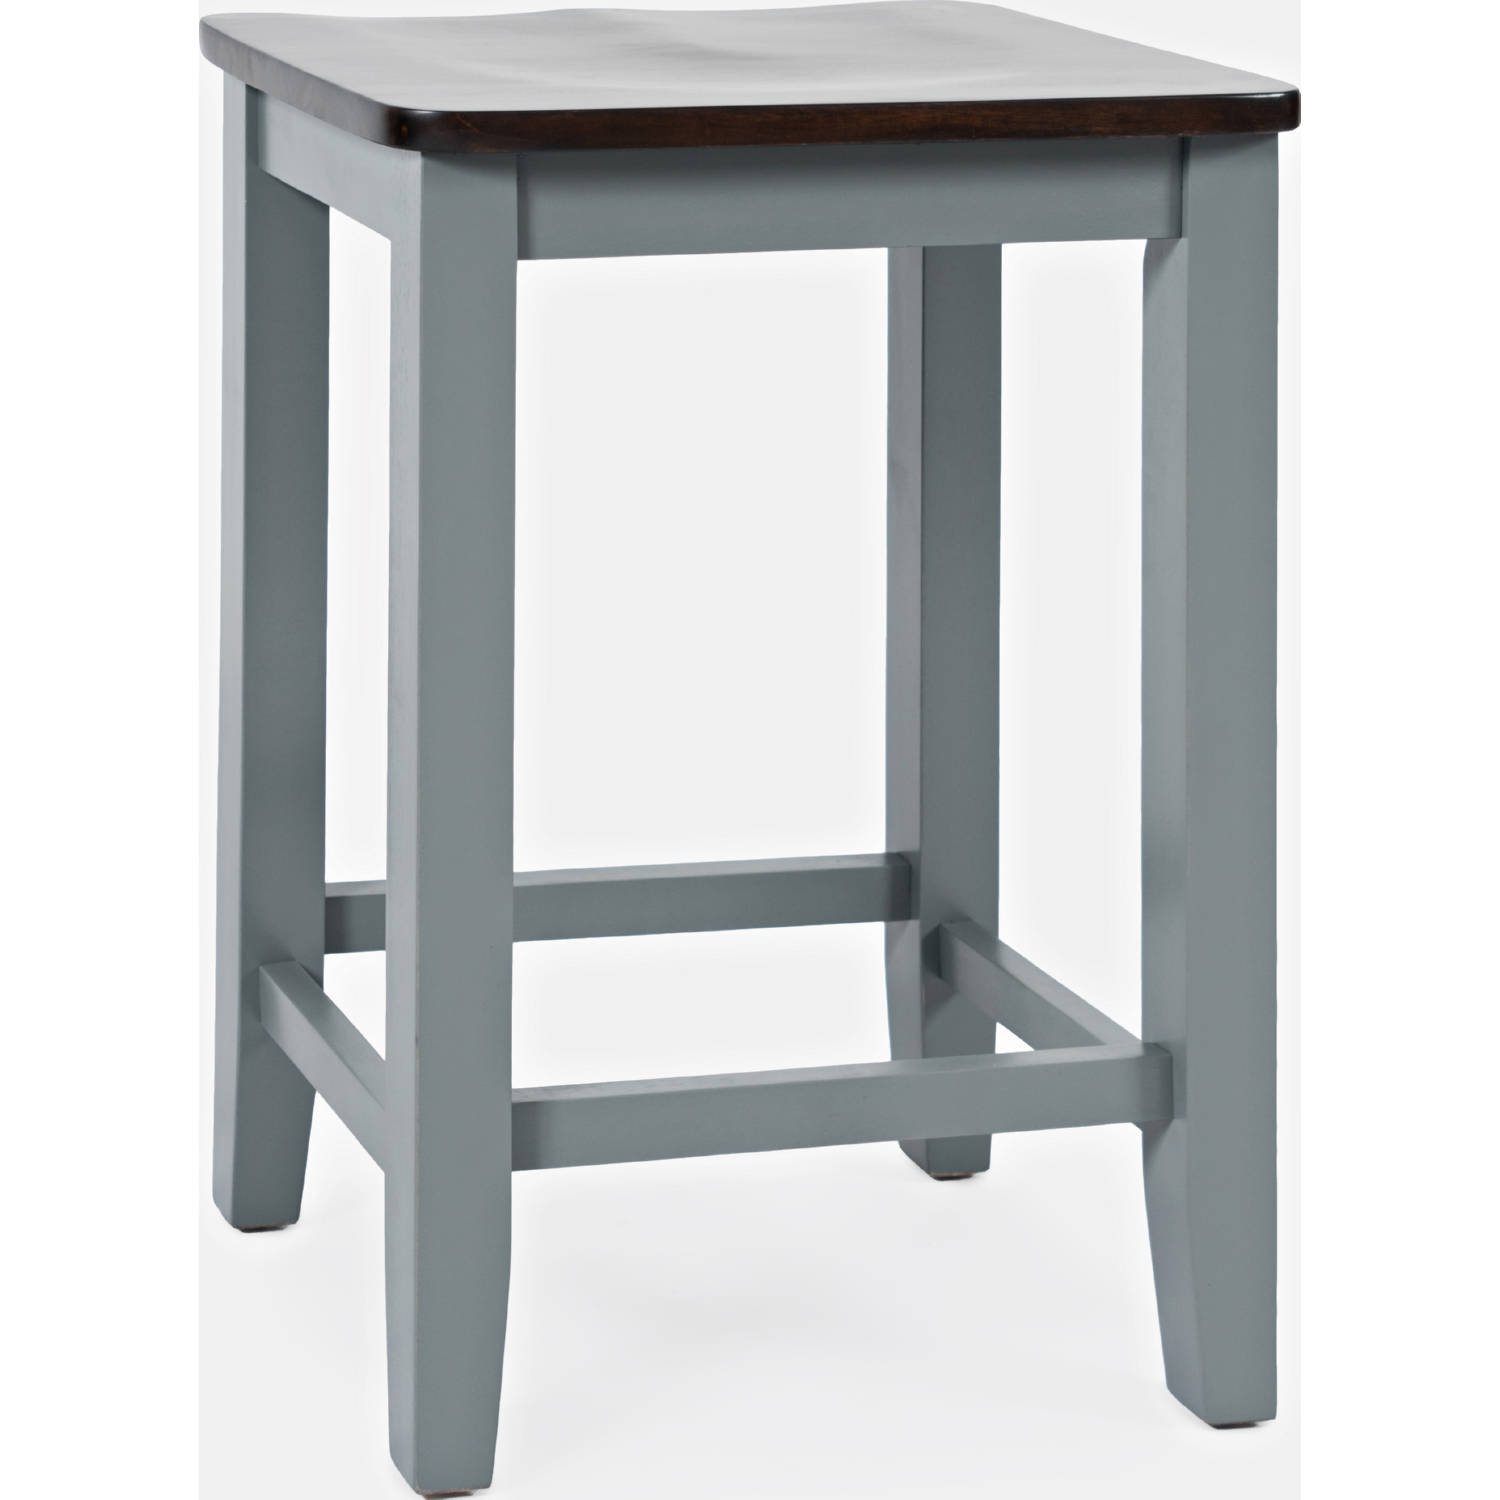 Excellent Asbury Park Backless Saddle Counter Stool In Grey Brown Set Of 2 By Jofran Gmtry Best Dining Table And Chair Ideas Images Gmtryco